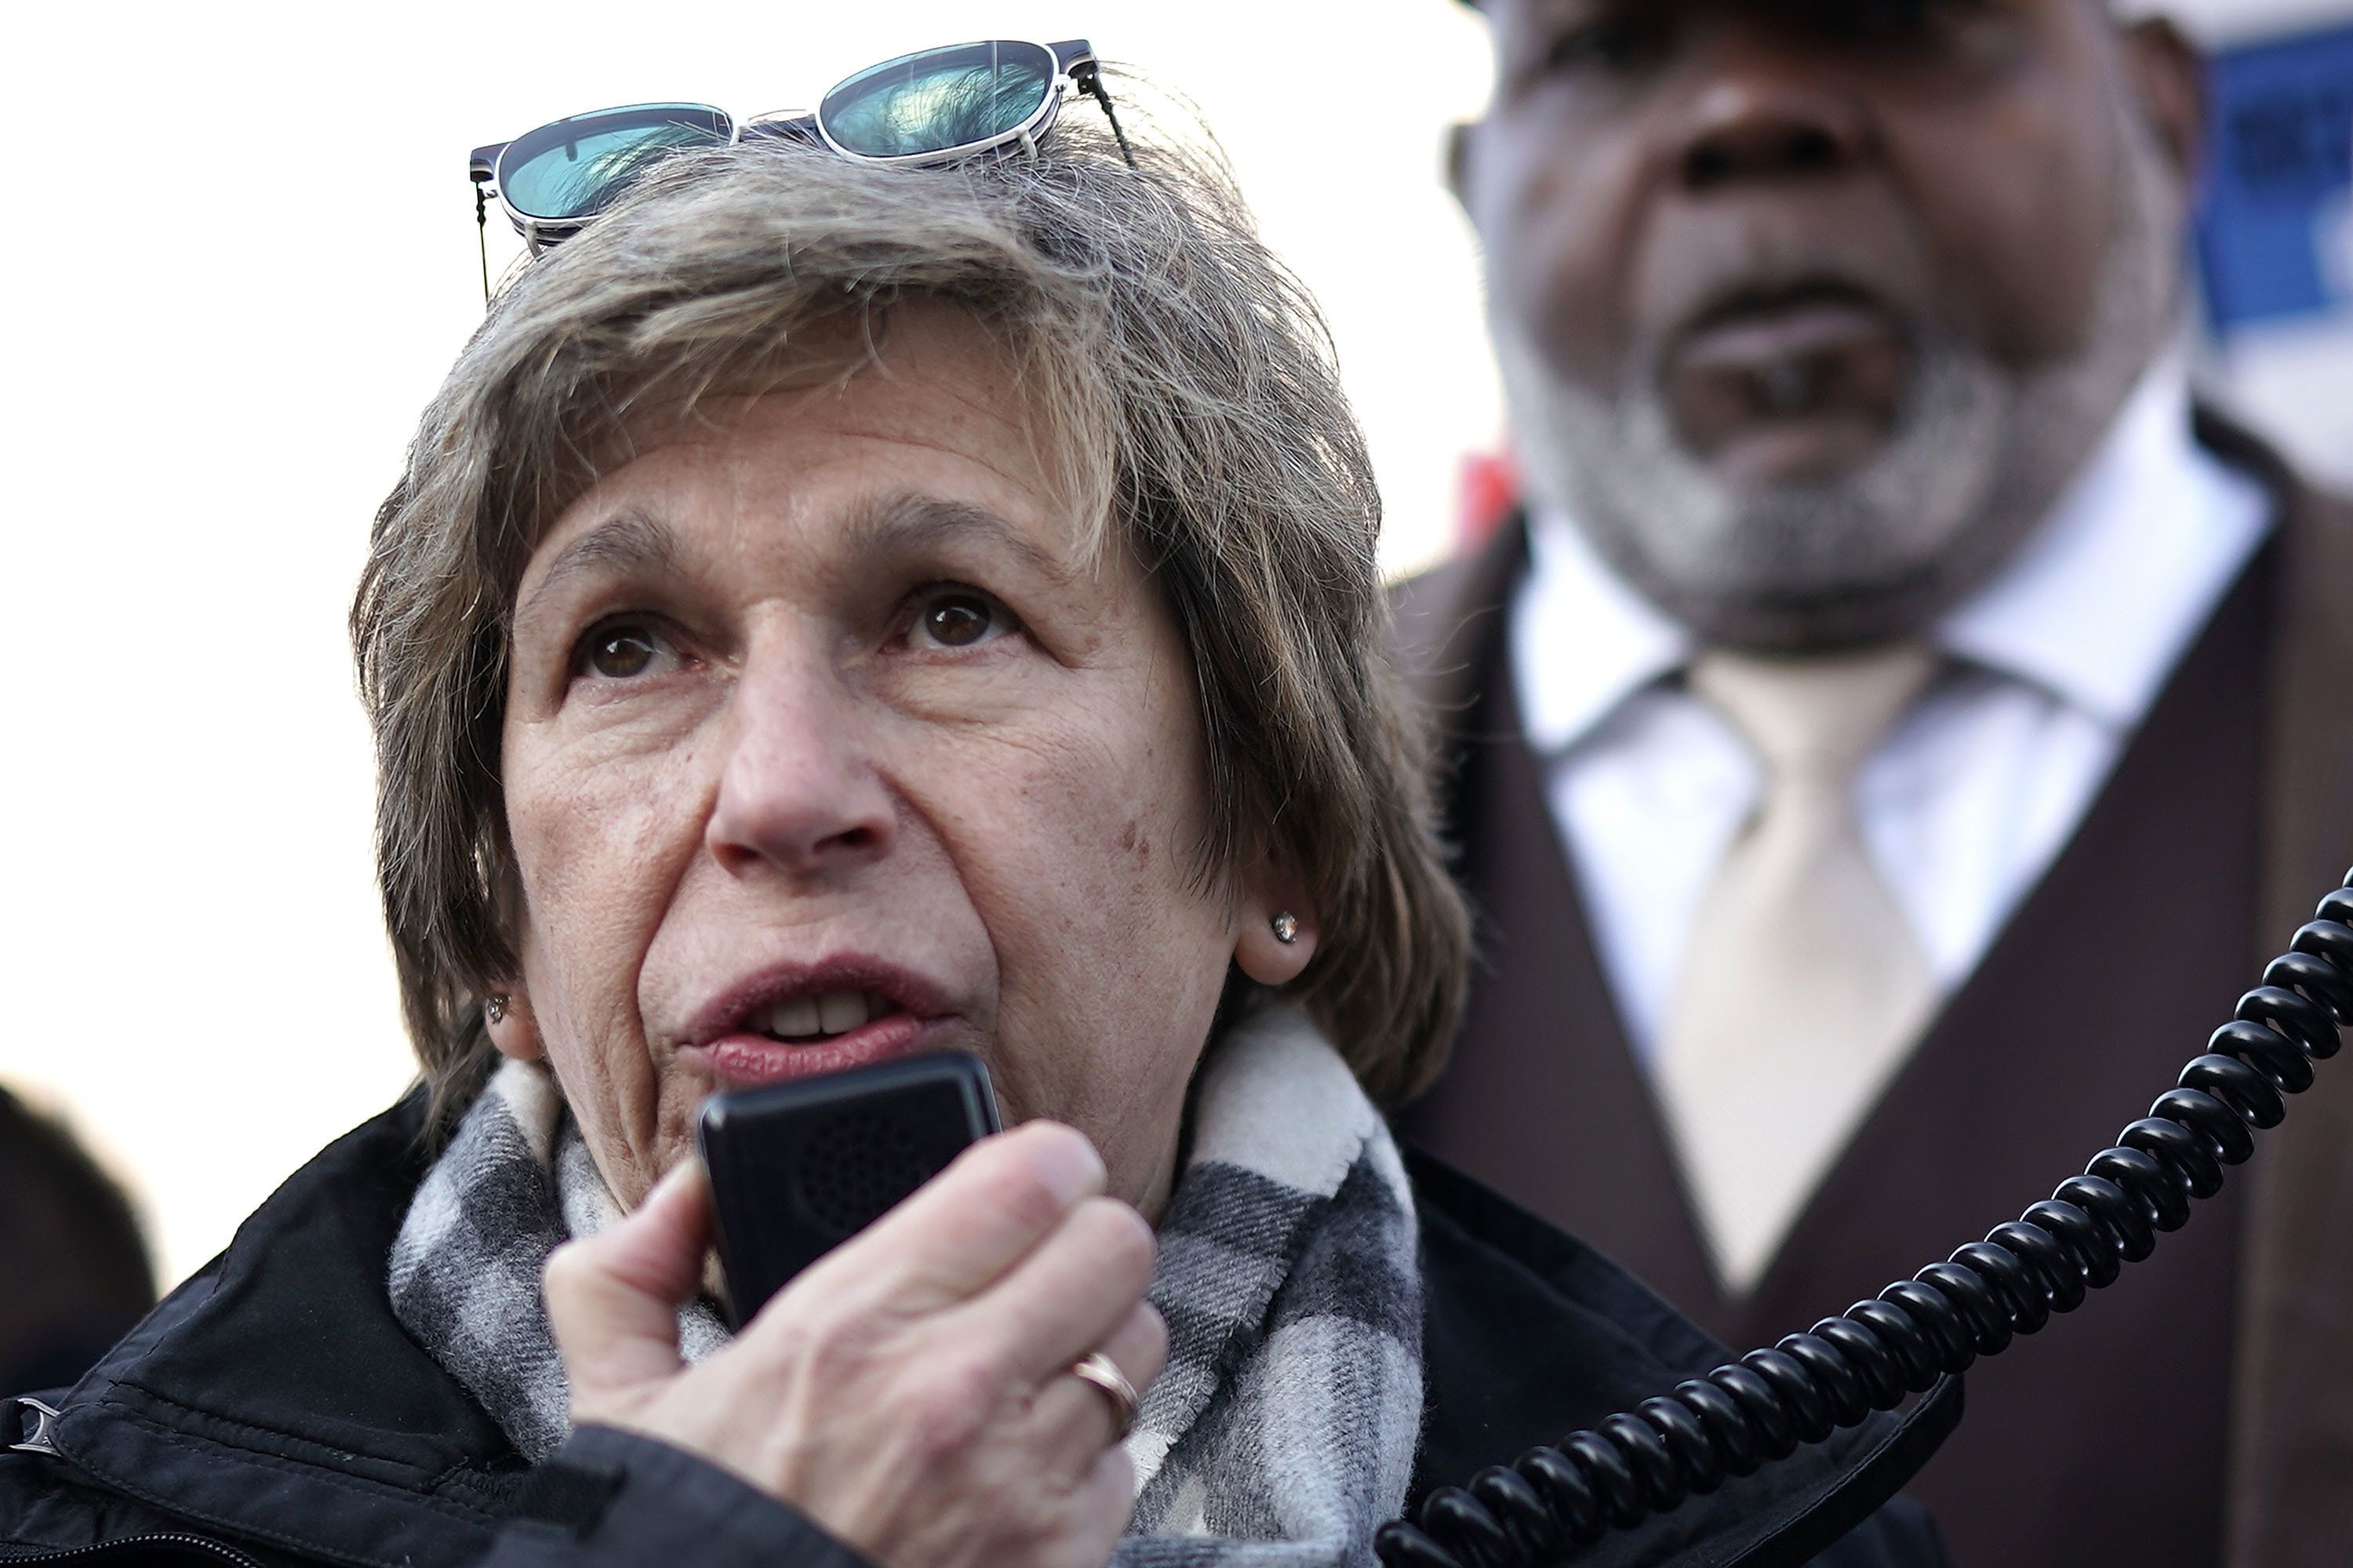 WASHINGTON, DC - FEBRUARY 08: American Federation of Teachers President Randi Weingarten speaks during a rally to deliver report cards to Secretary of Education Betsy DeVos outside the Department of Education February 8, 2018 in Washington, DC. Activists tried to deliver over 80,000 report cards to Secretary DeVos, grading her performance as 'failed.' (Photo by Alex Wong/Getty Images)